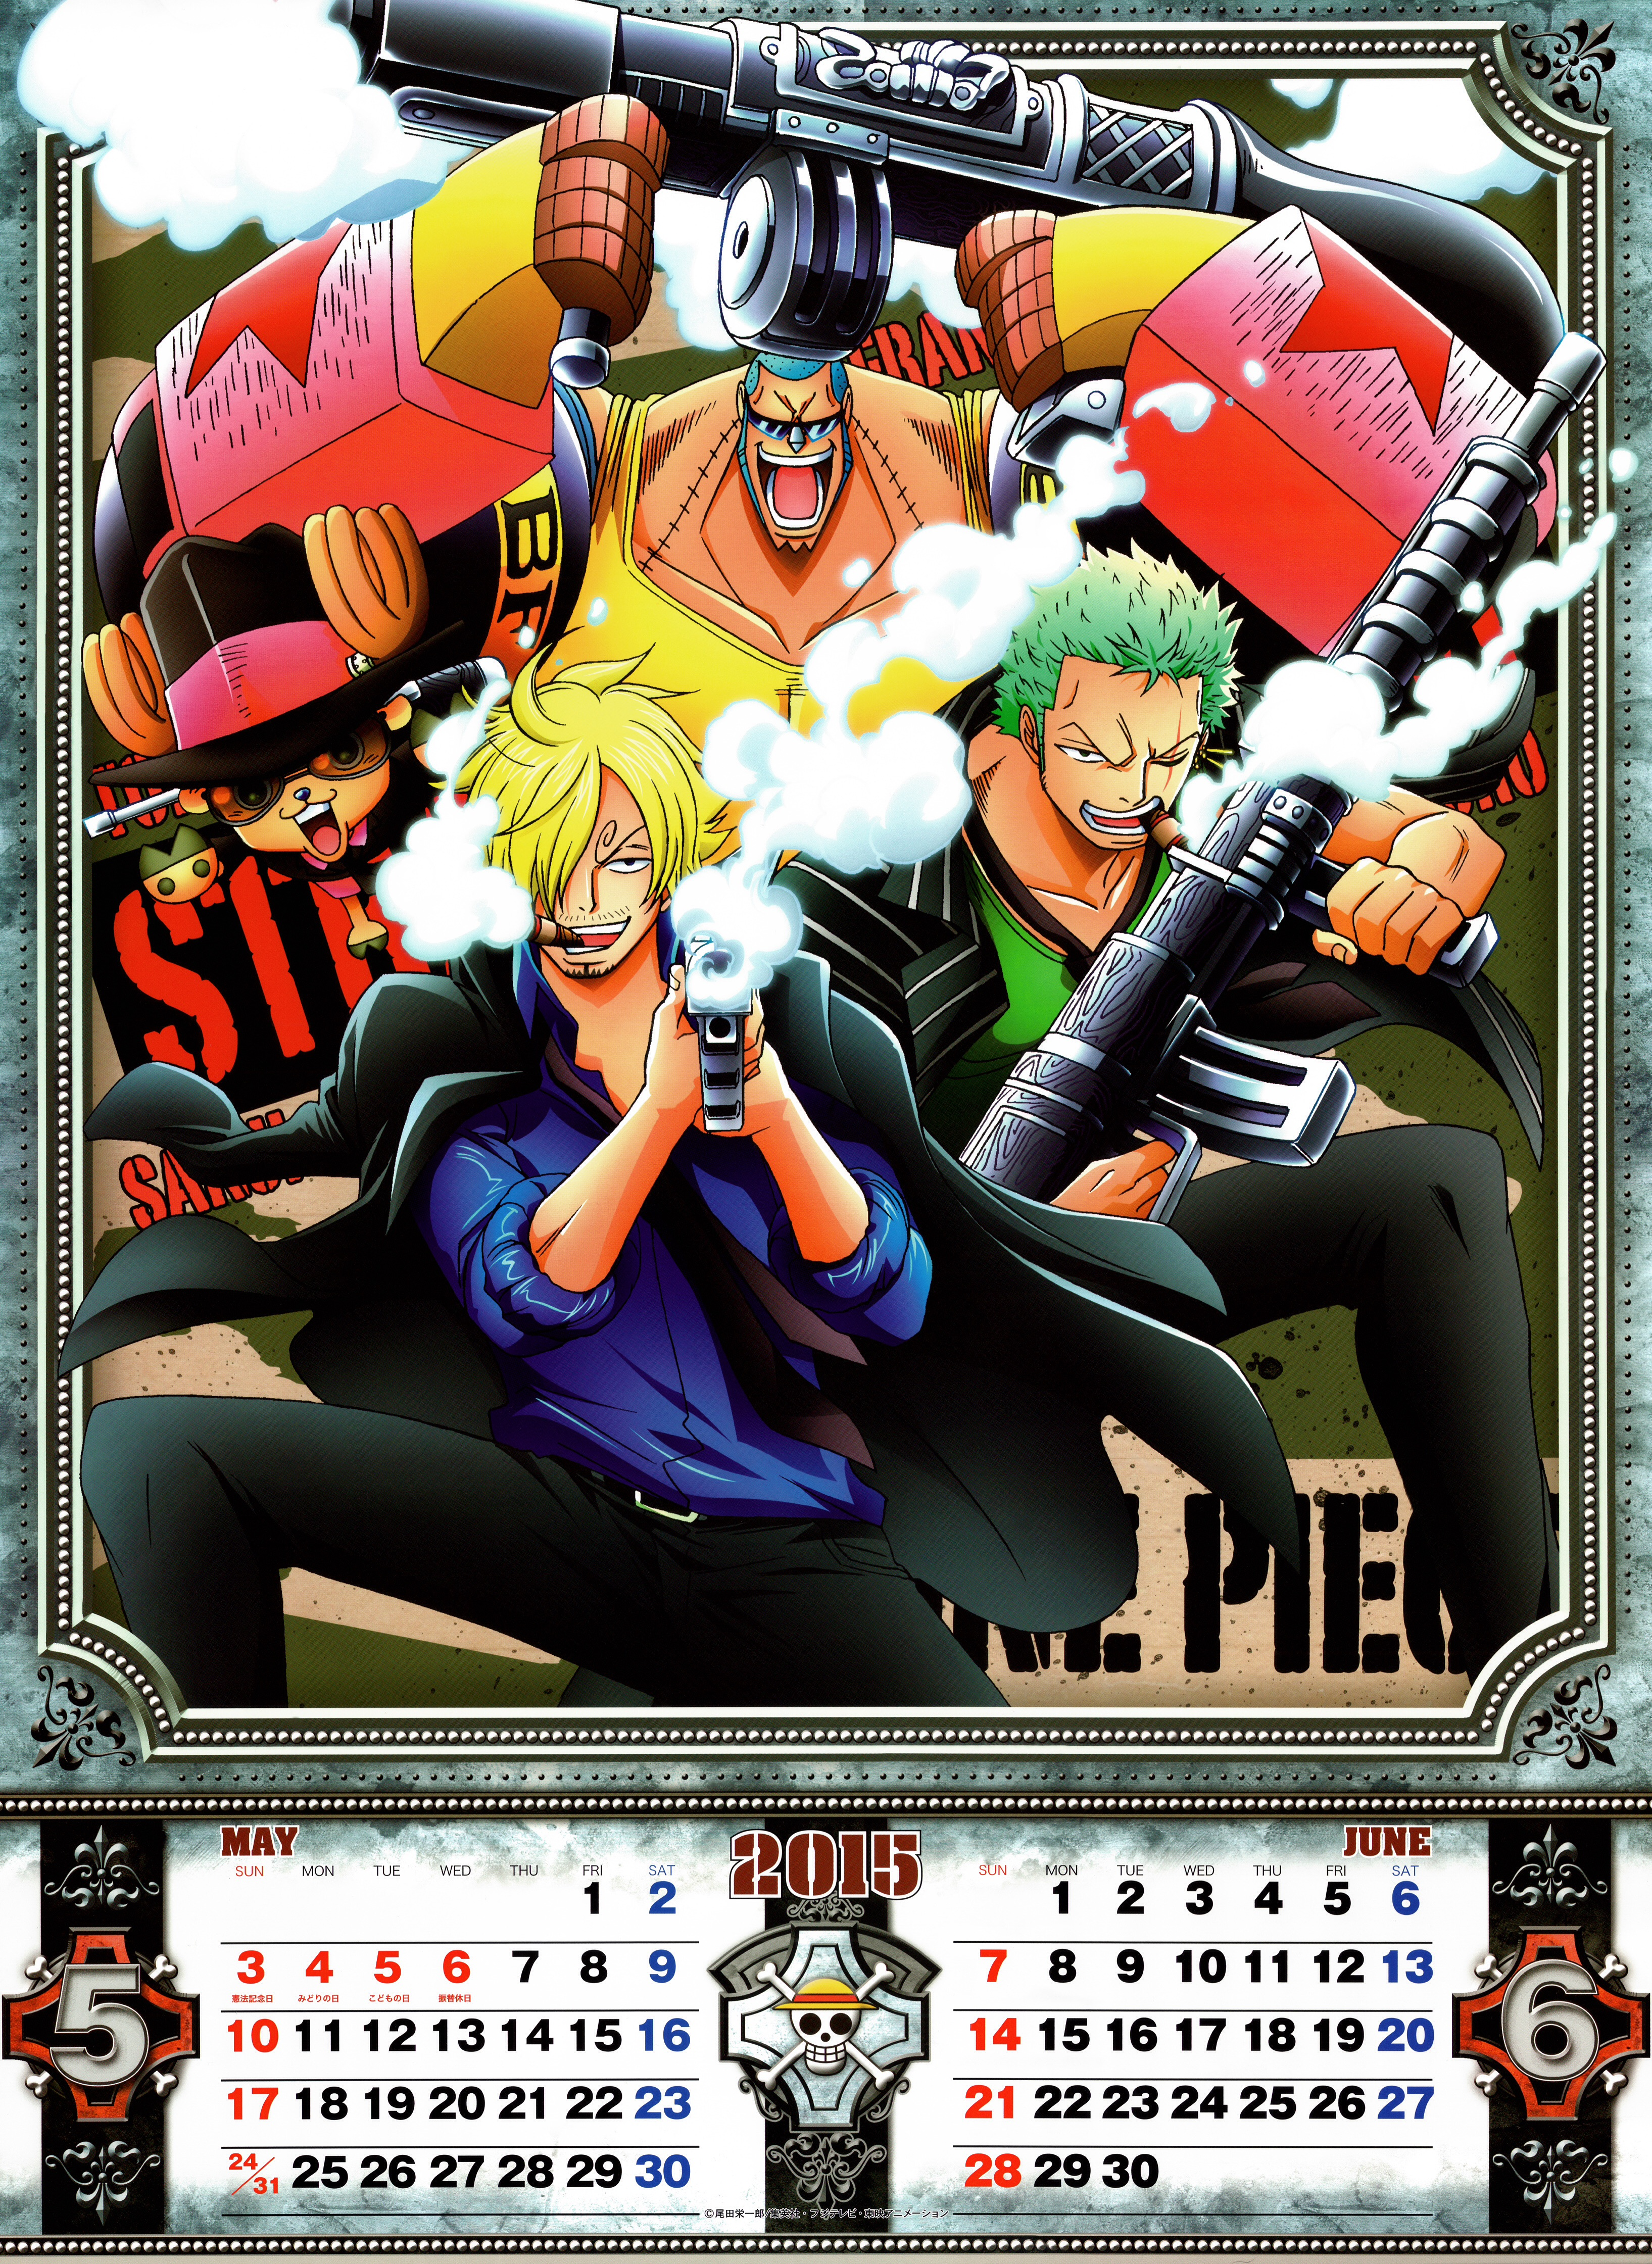 Calendar Art Piece : May june one piece official calendar by candydfighter